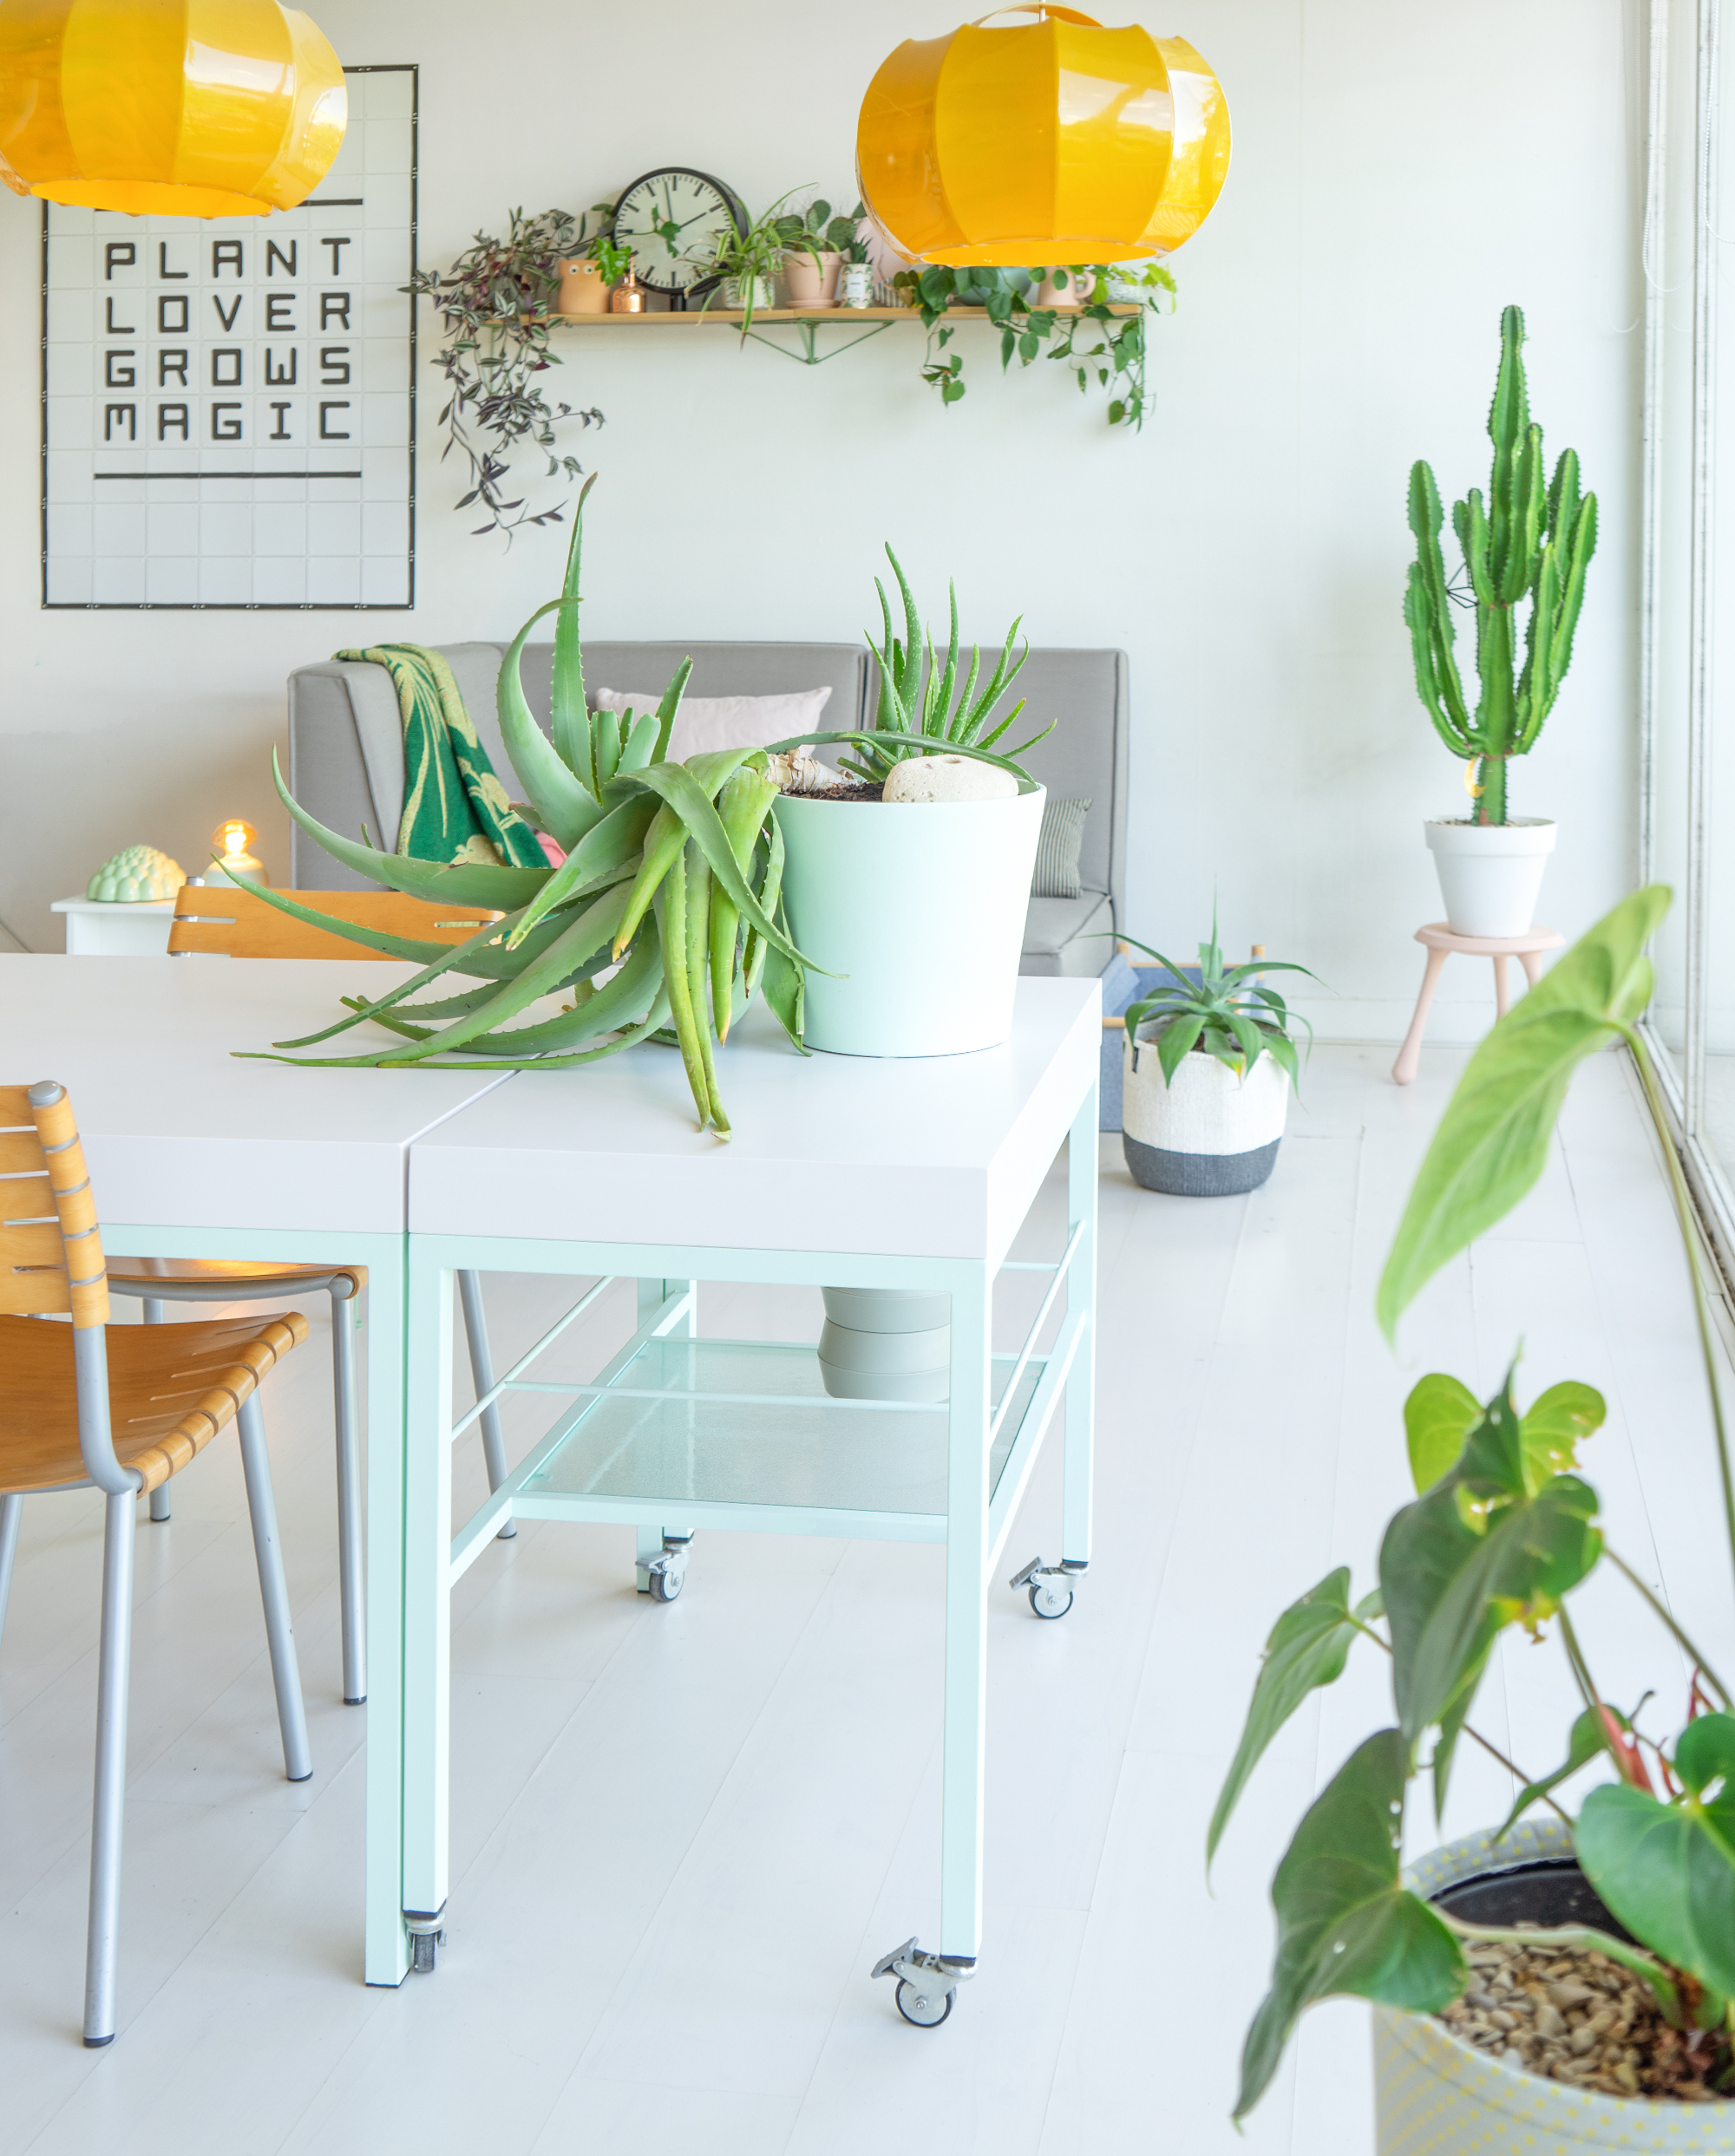 JOELIX.com | Painting the dining table #pastelparadise #urbanjunglebloggers